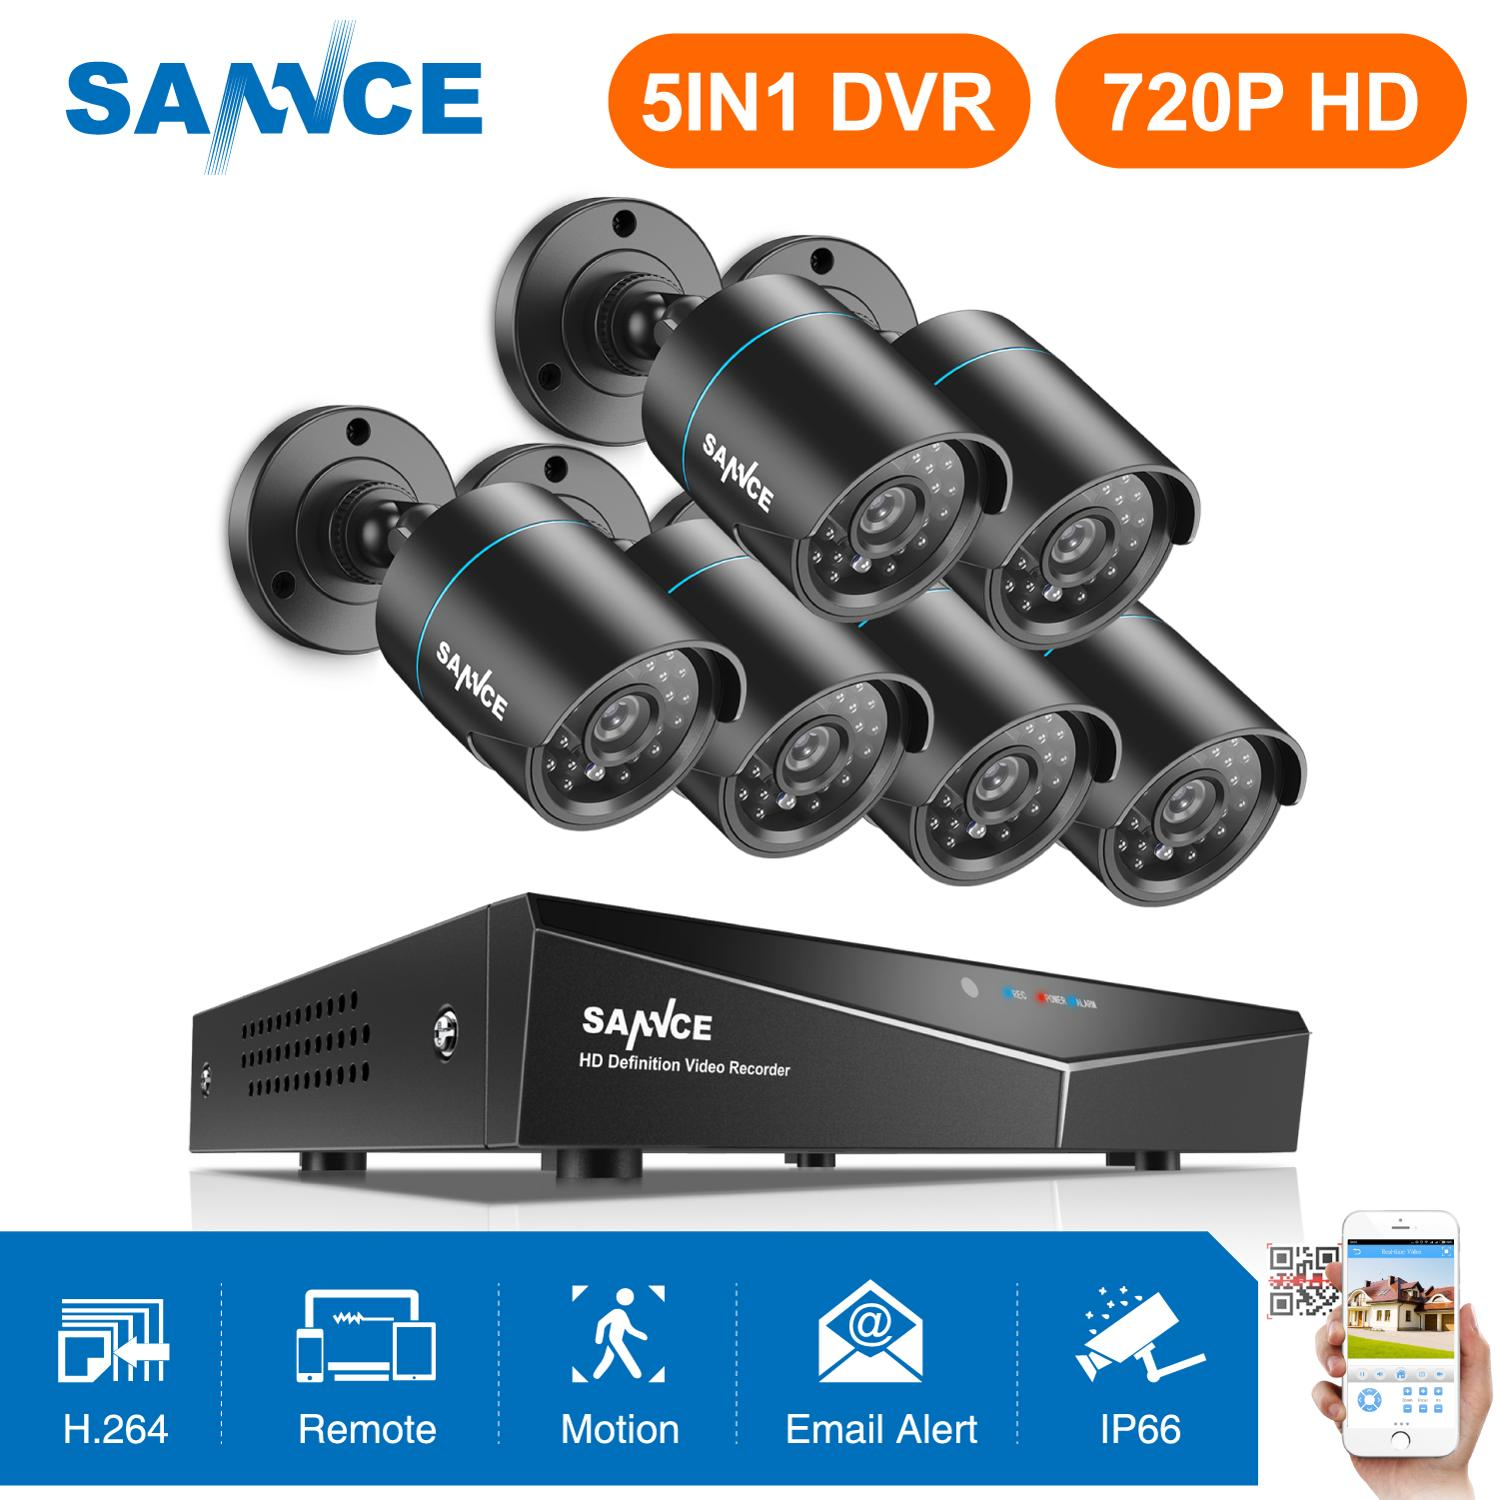 SANNCE 8CH HD 720P Securiry Video System 5IN1 DVR With 6PCS 1280TVL TVI Smart IR Outdoor Weatherproof Camera Kit Home CCTV KitsSANNCE 8CH HD 720P Securiry Video System 5IN1 DVR With 6PCS 1280TVL TVI Smart IR Outdoor Weatherproof Camera Kit Home CCTV Kits